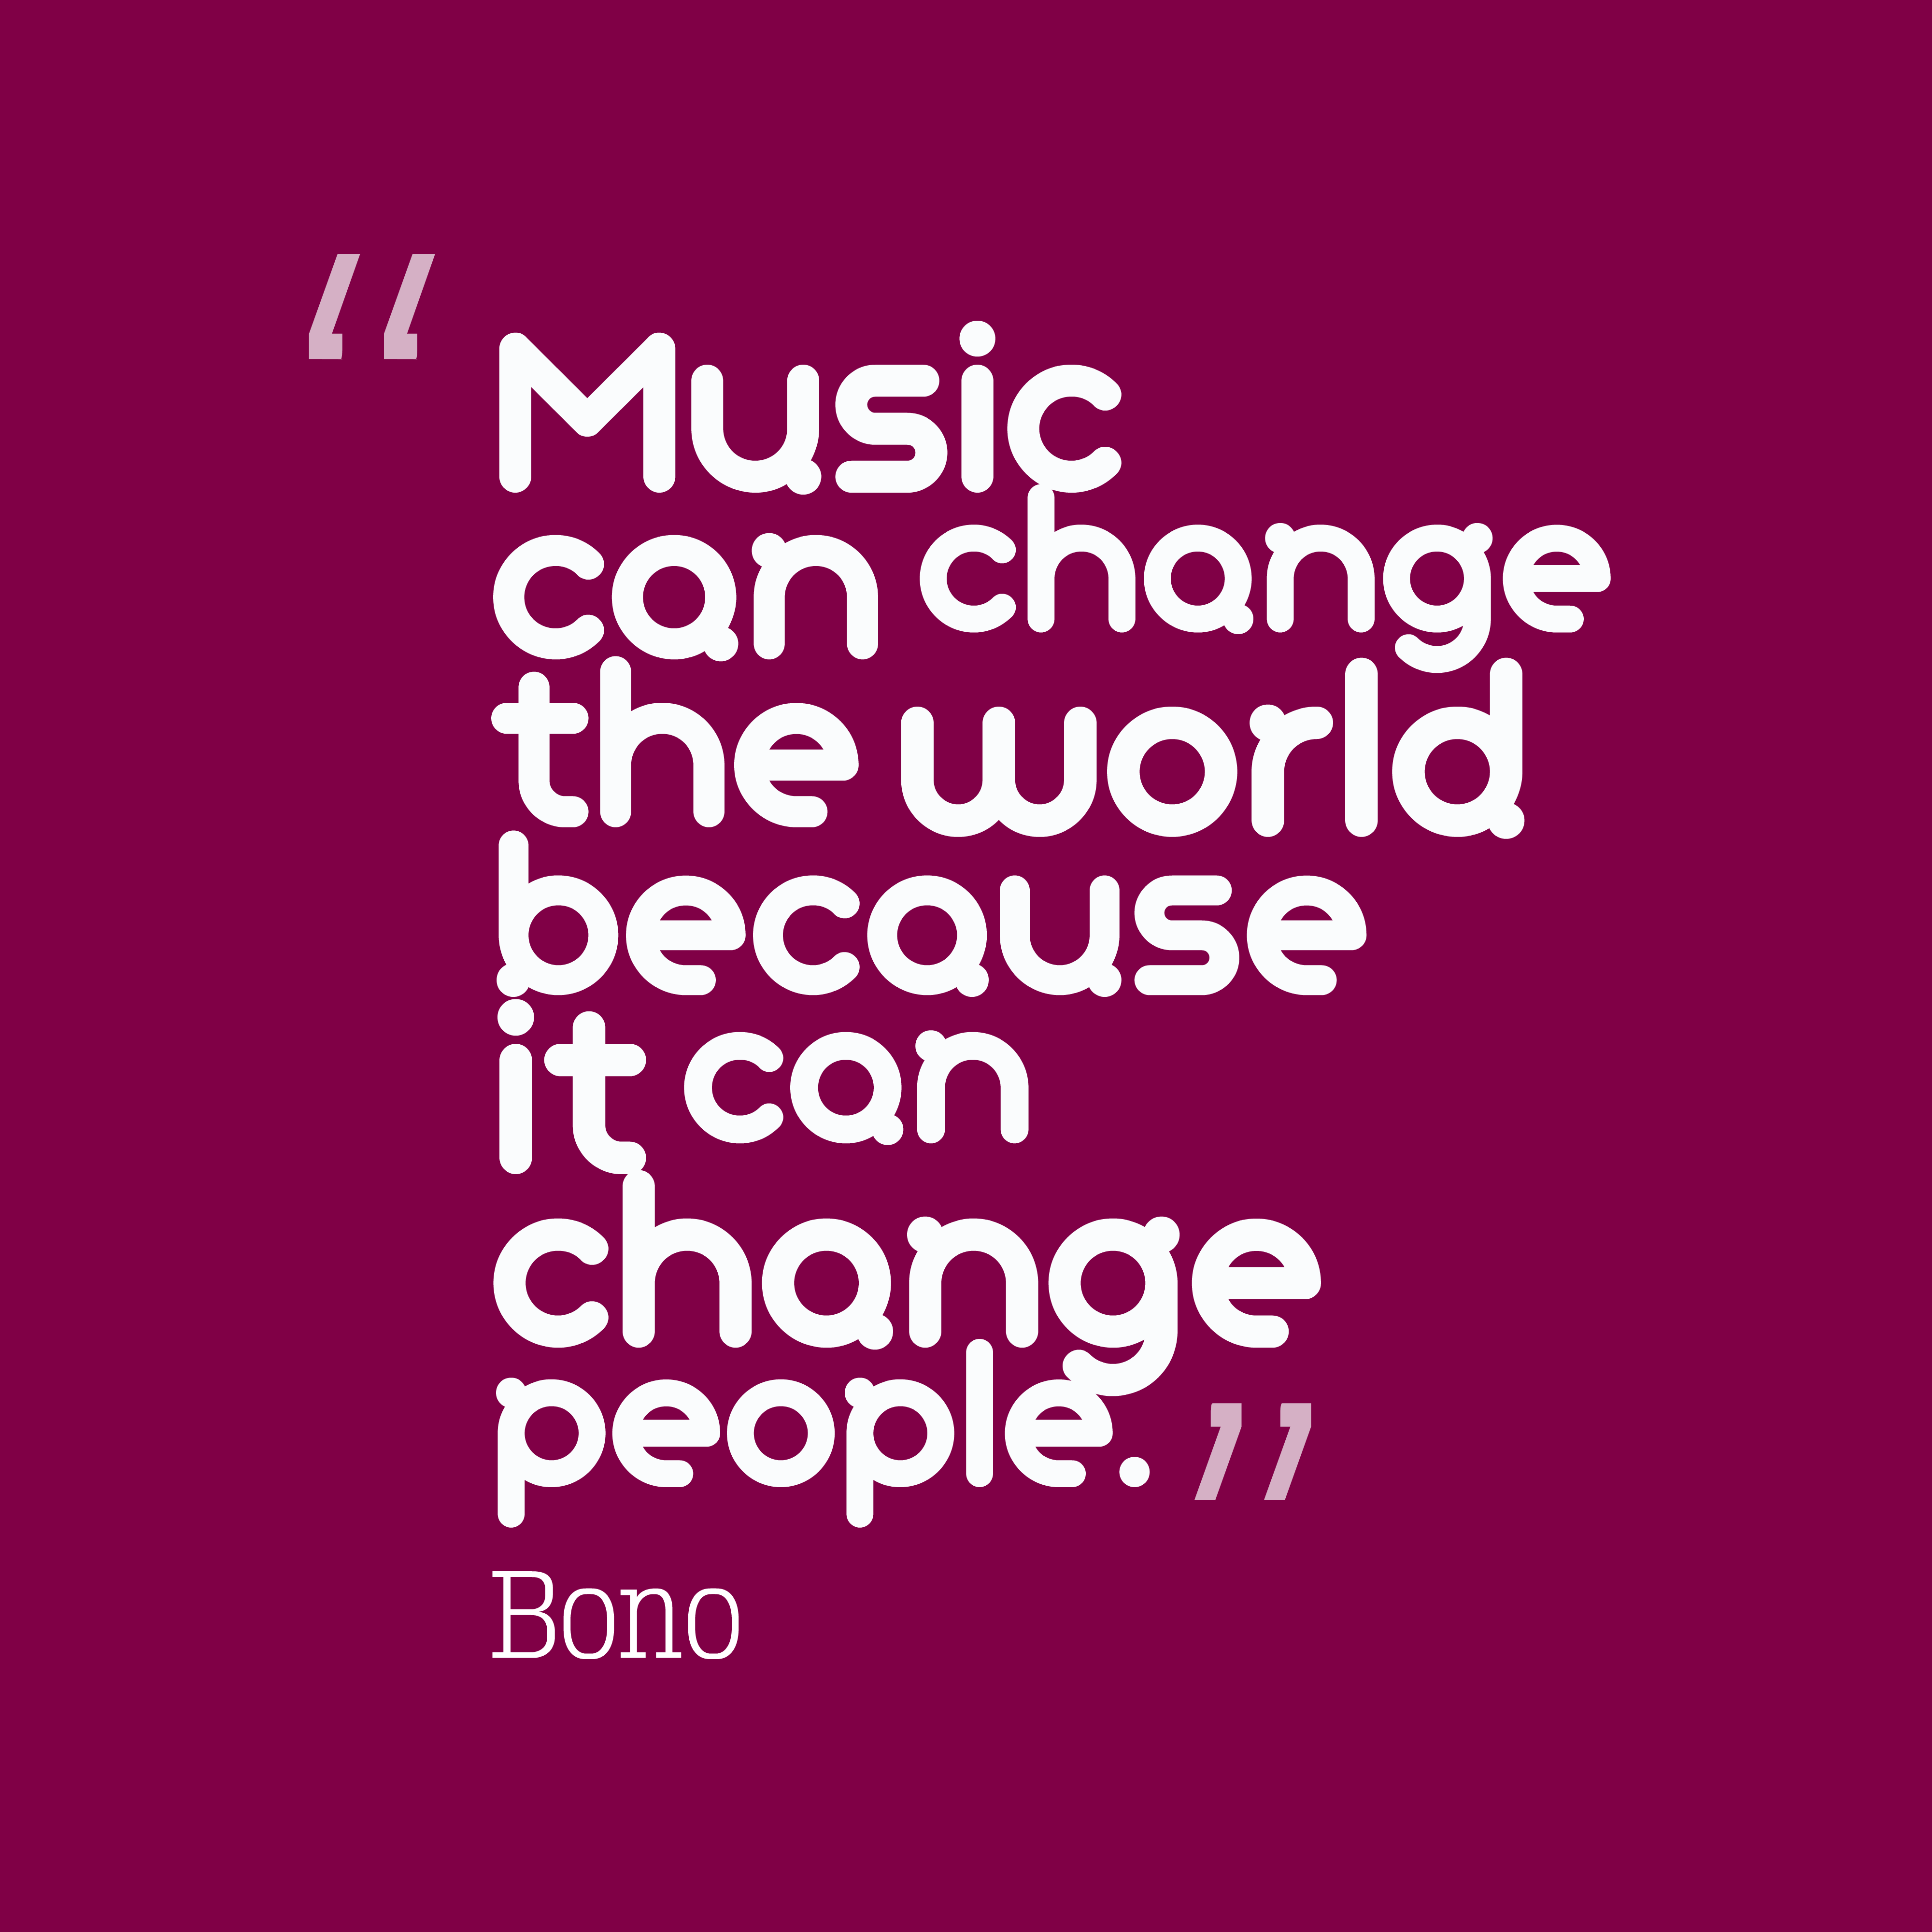 Bono Quote About Music